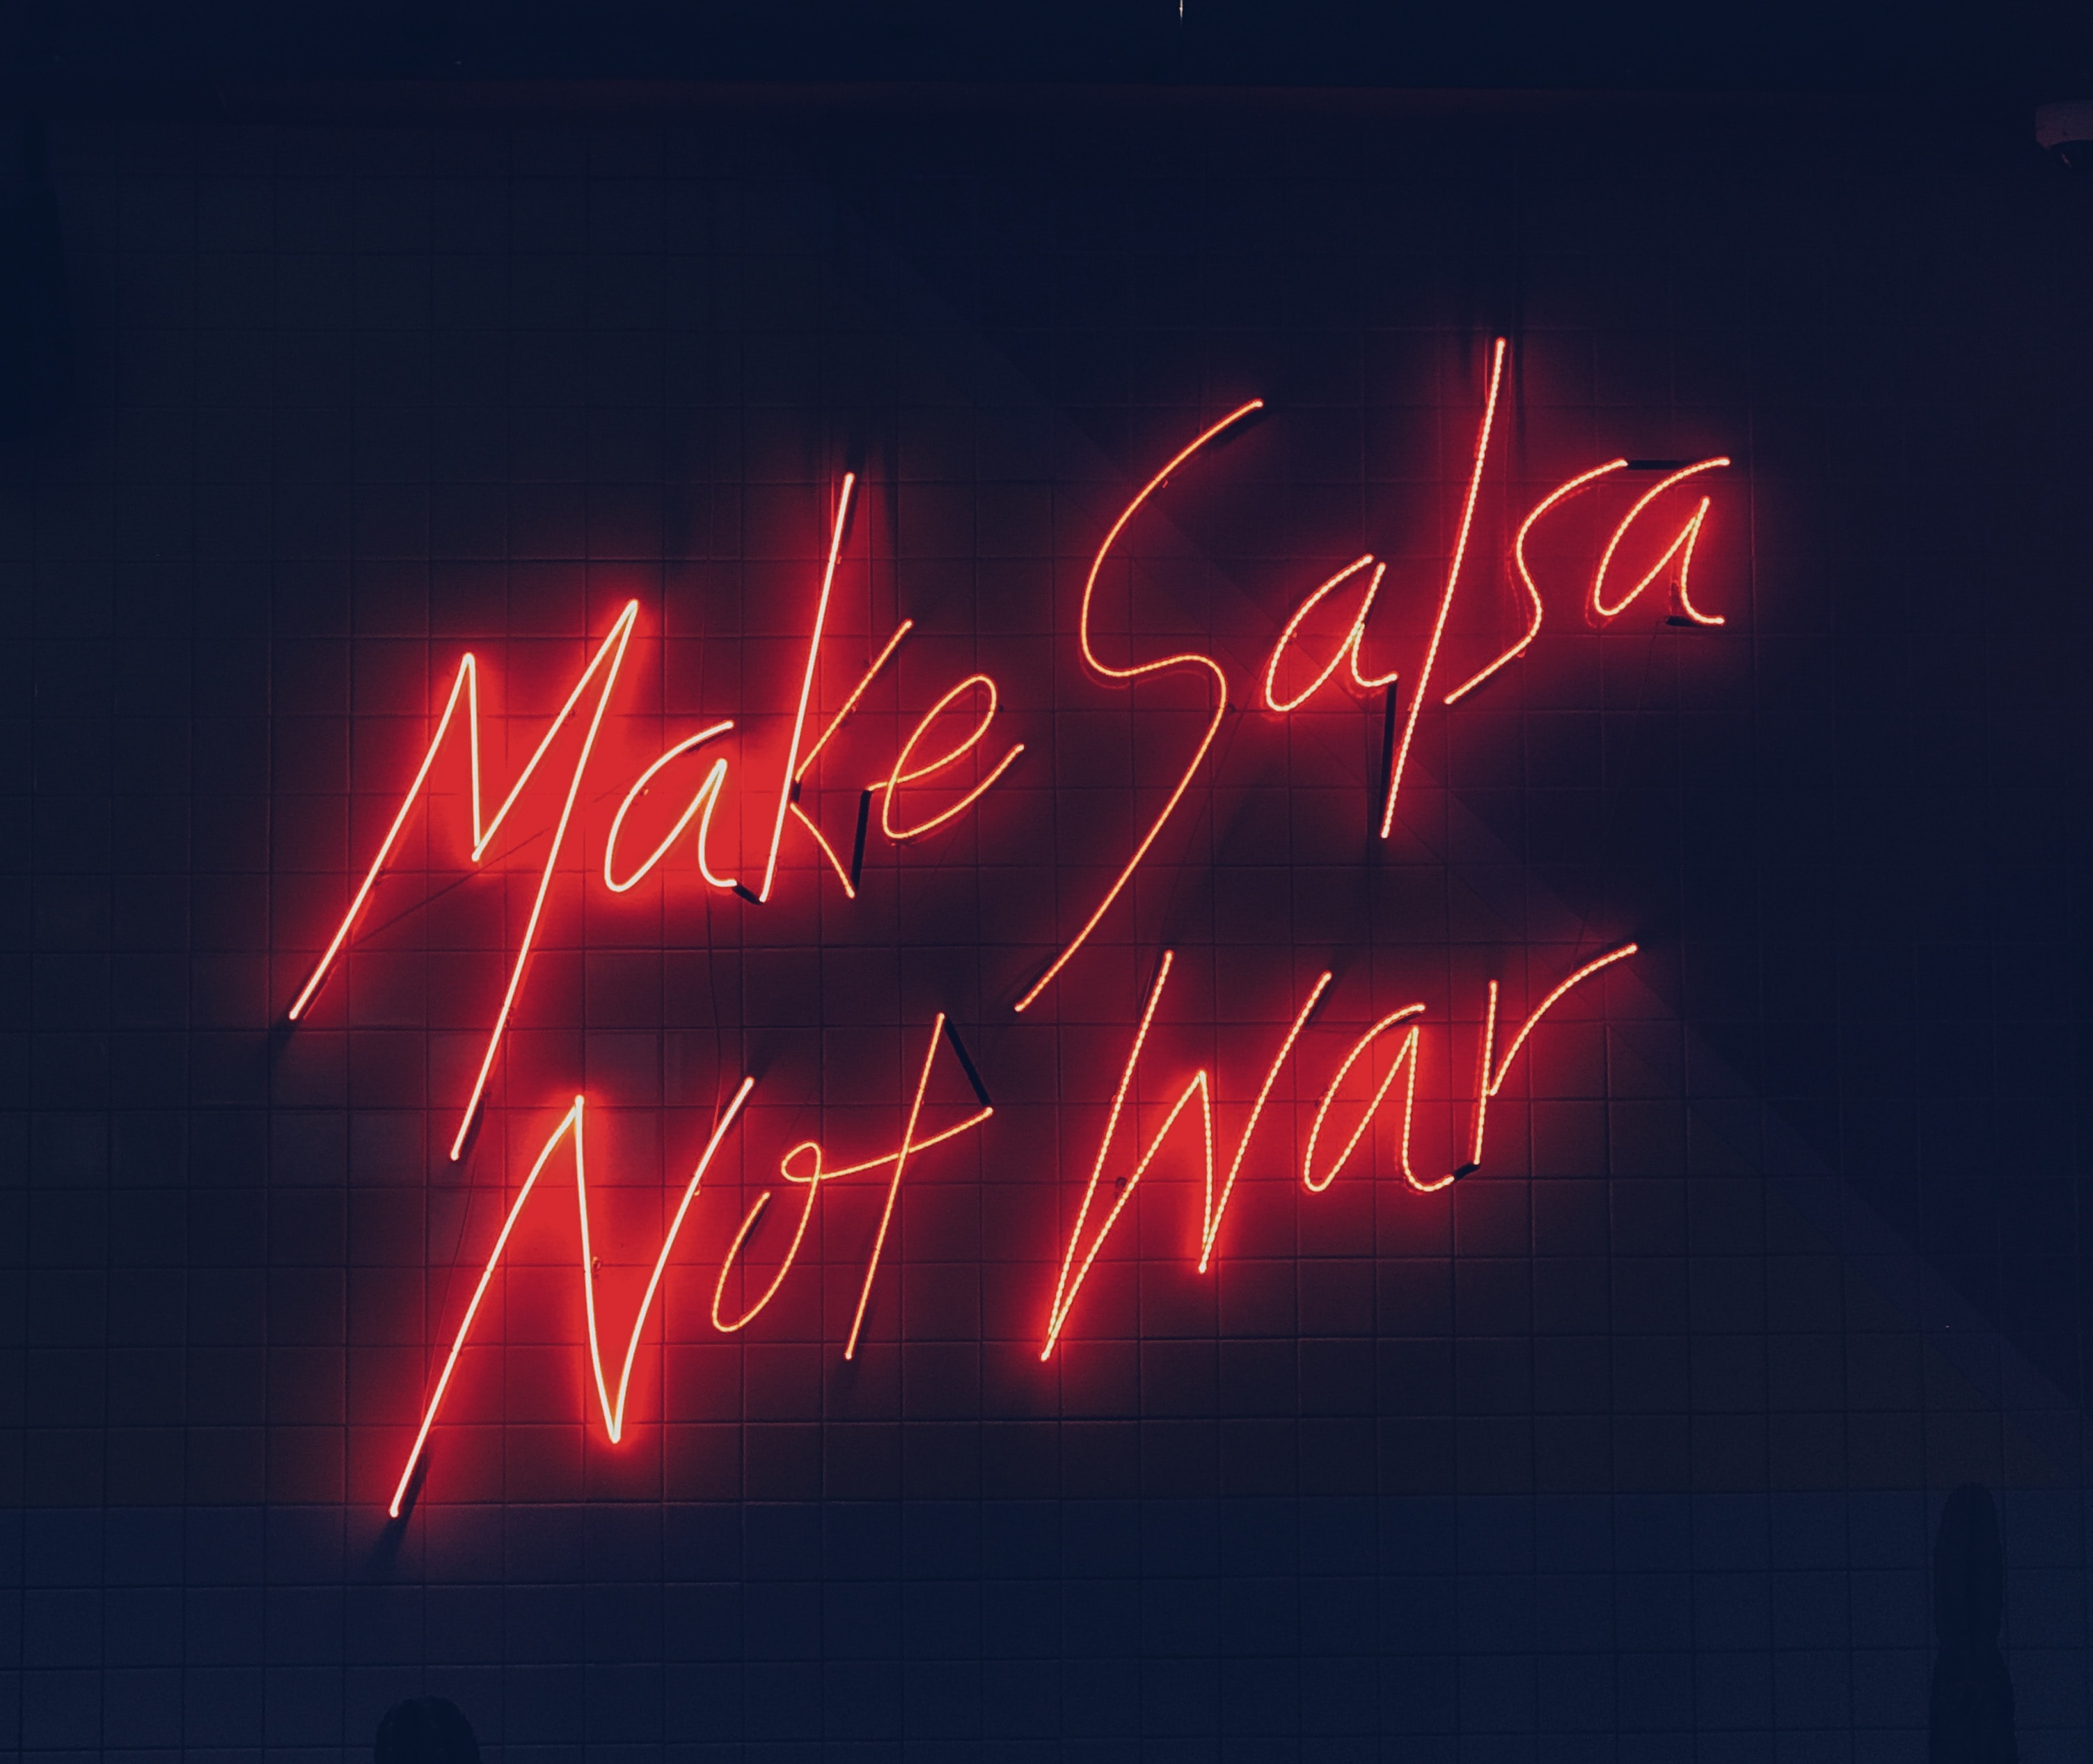 make salsa not war neon signage